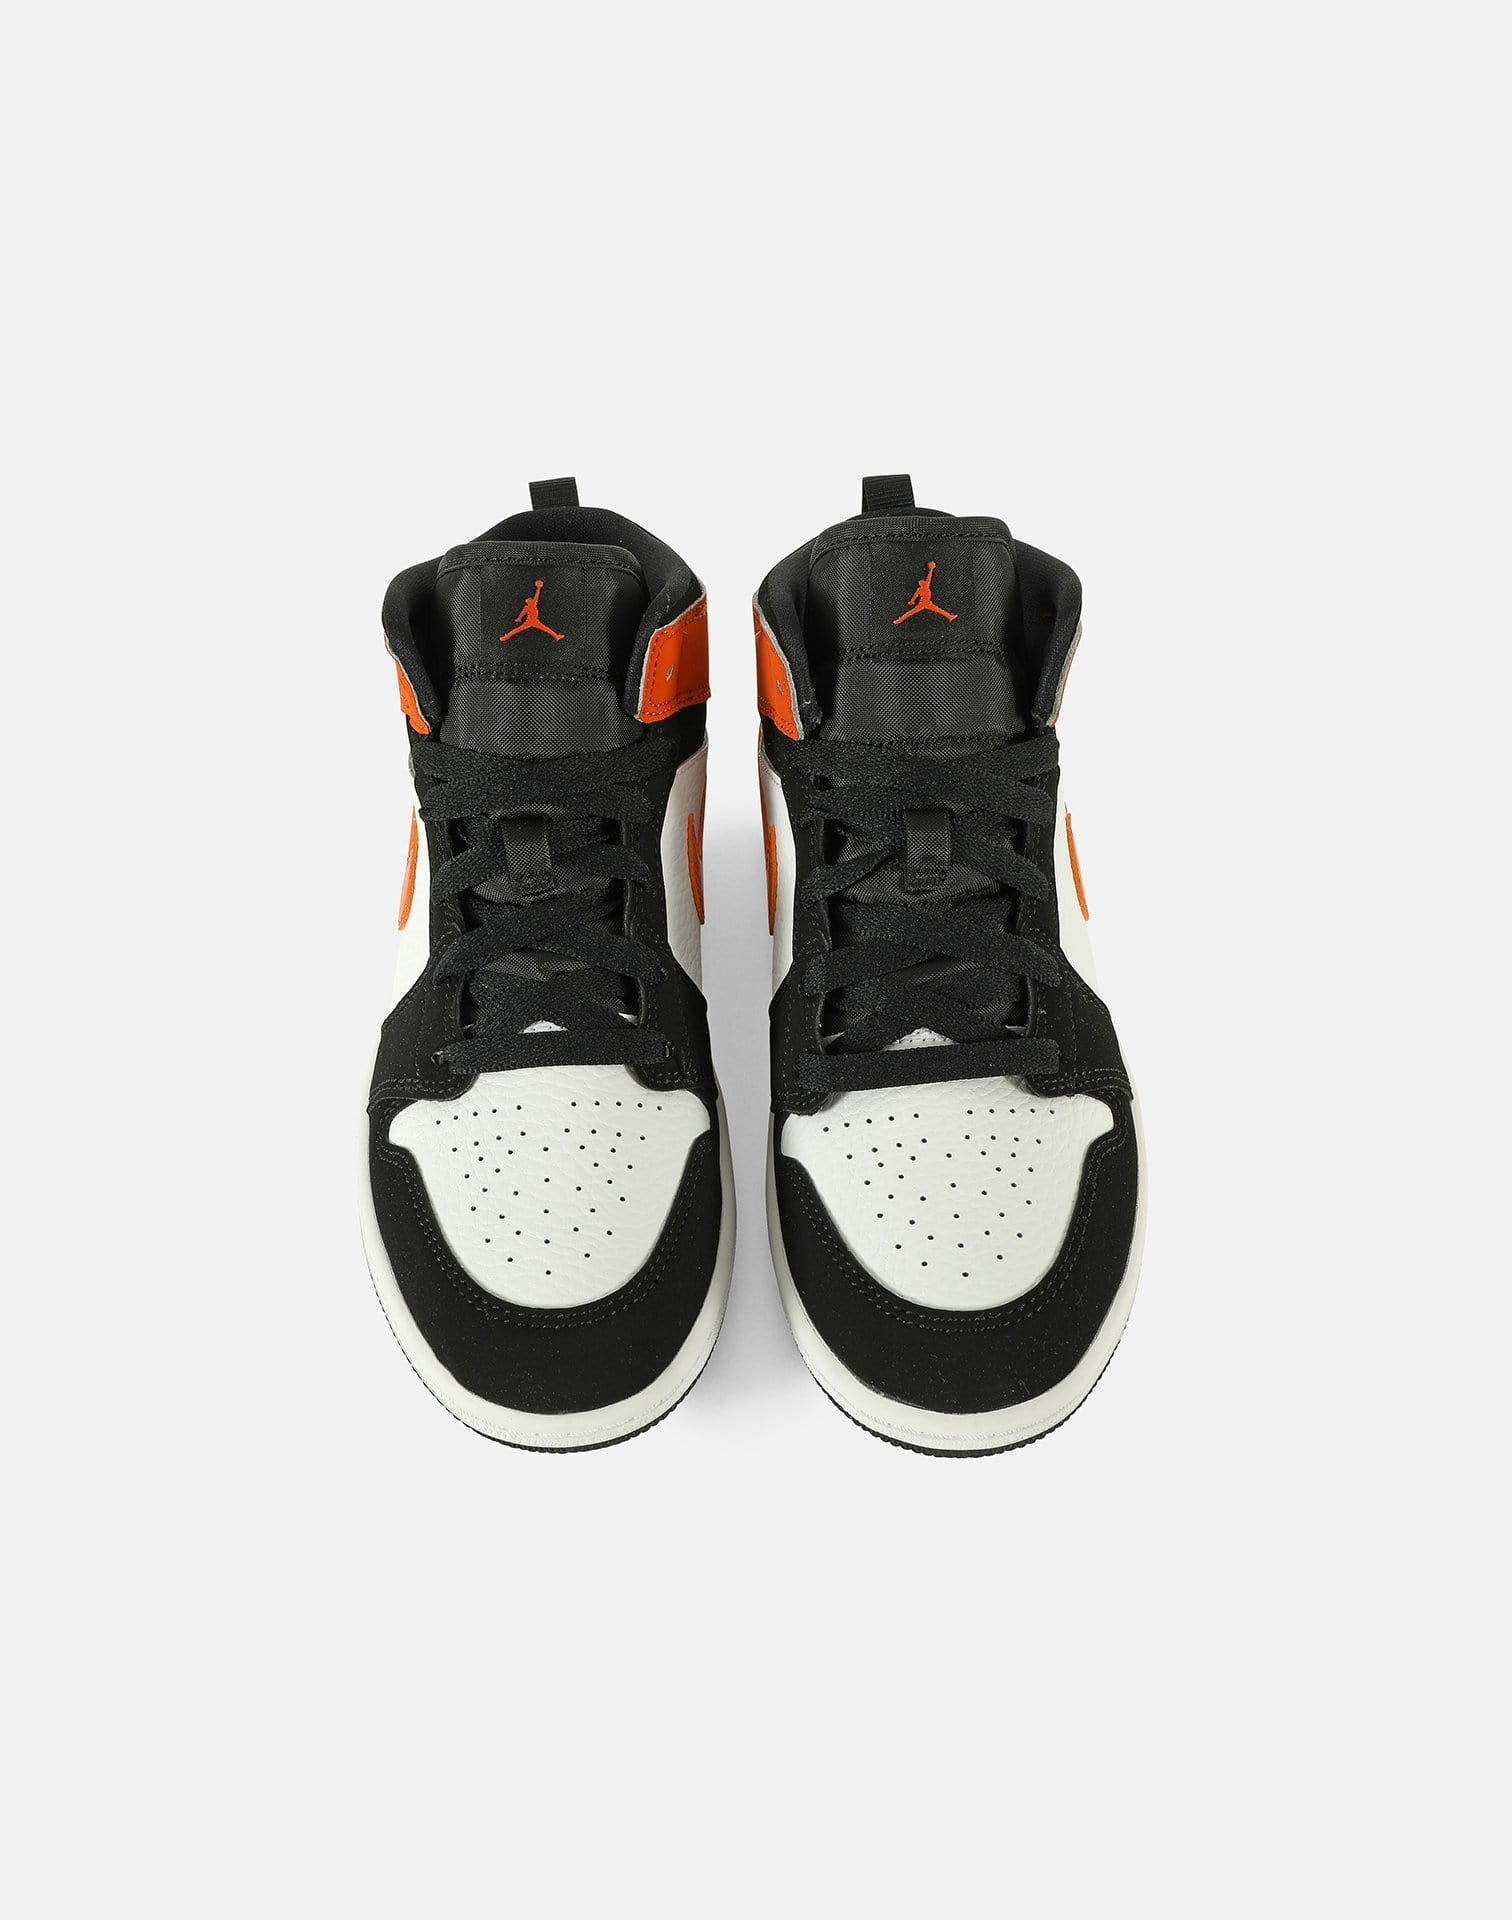 Jordan Air Jordan 1 Mid 'Shattered Backboard' Pre-School